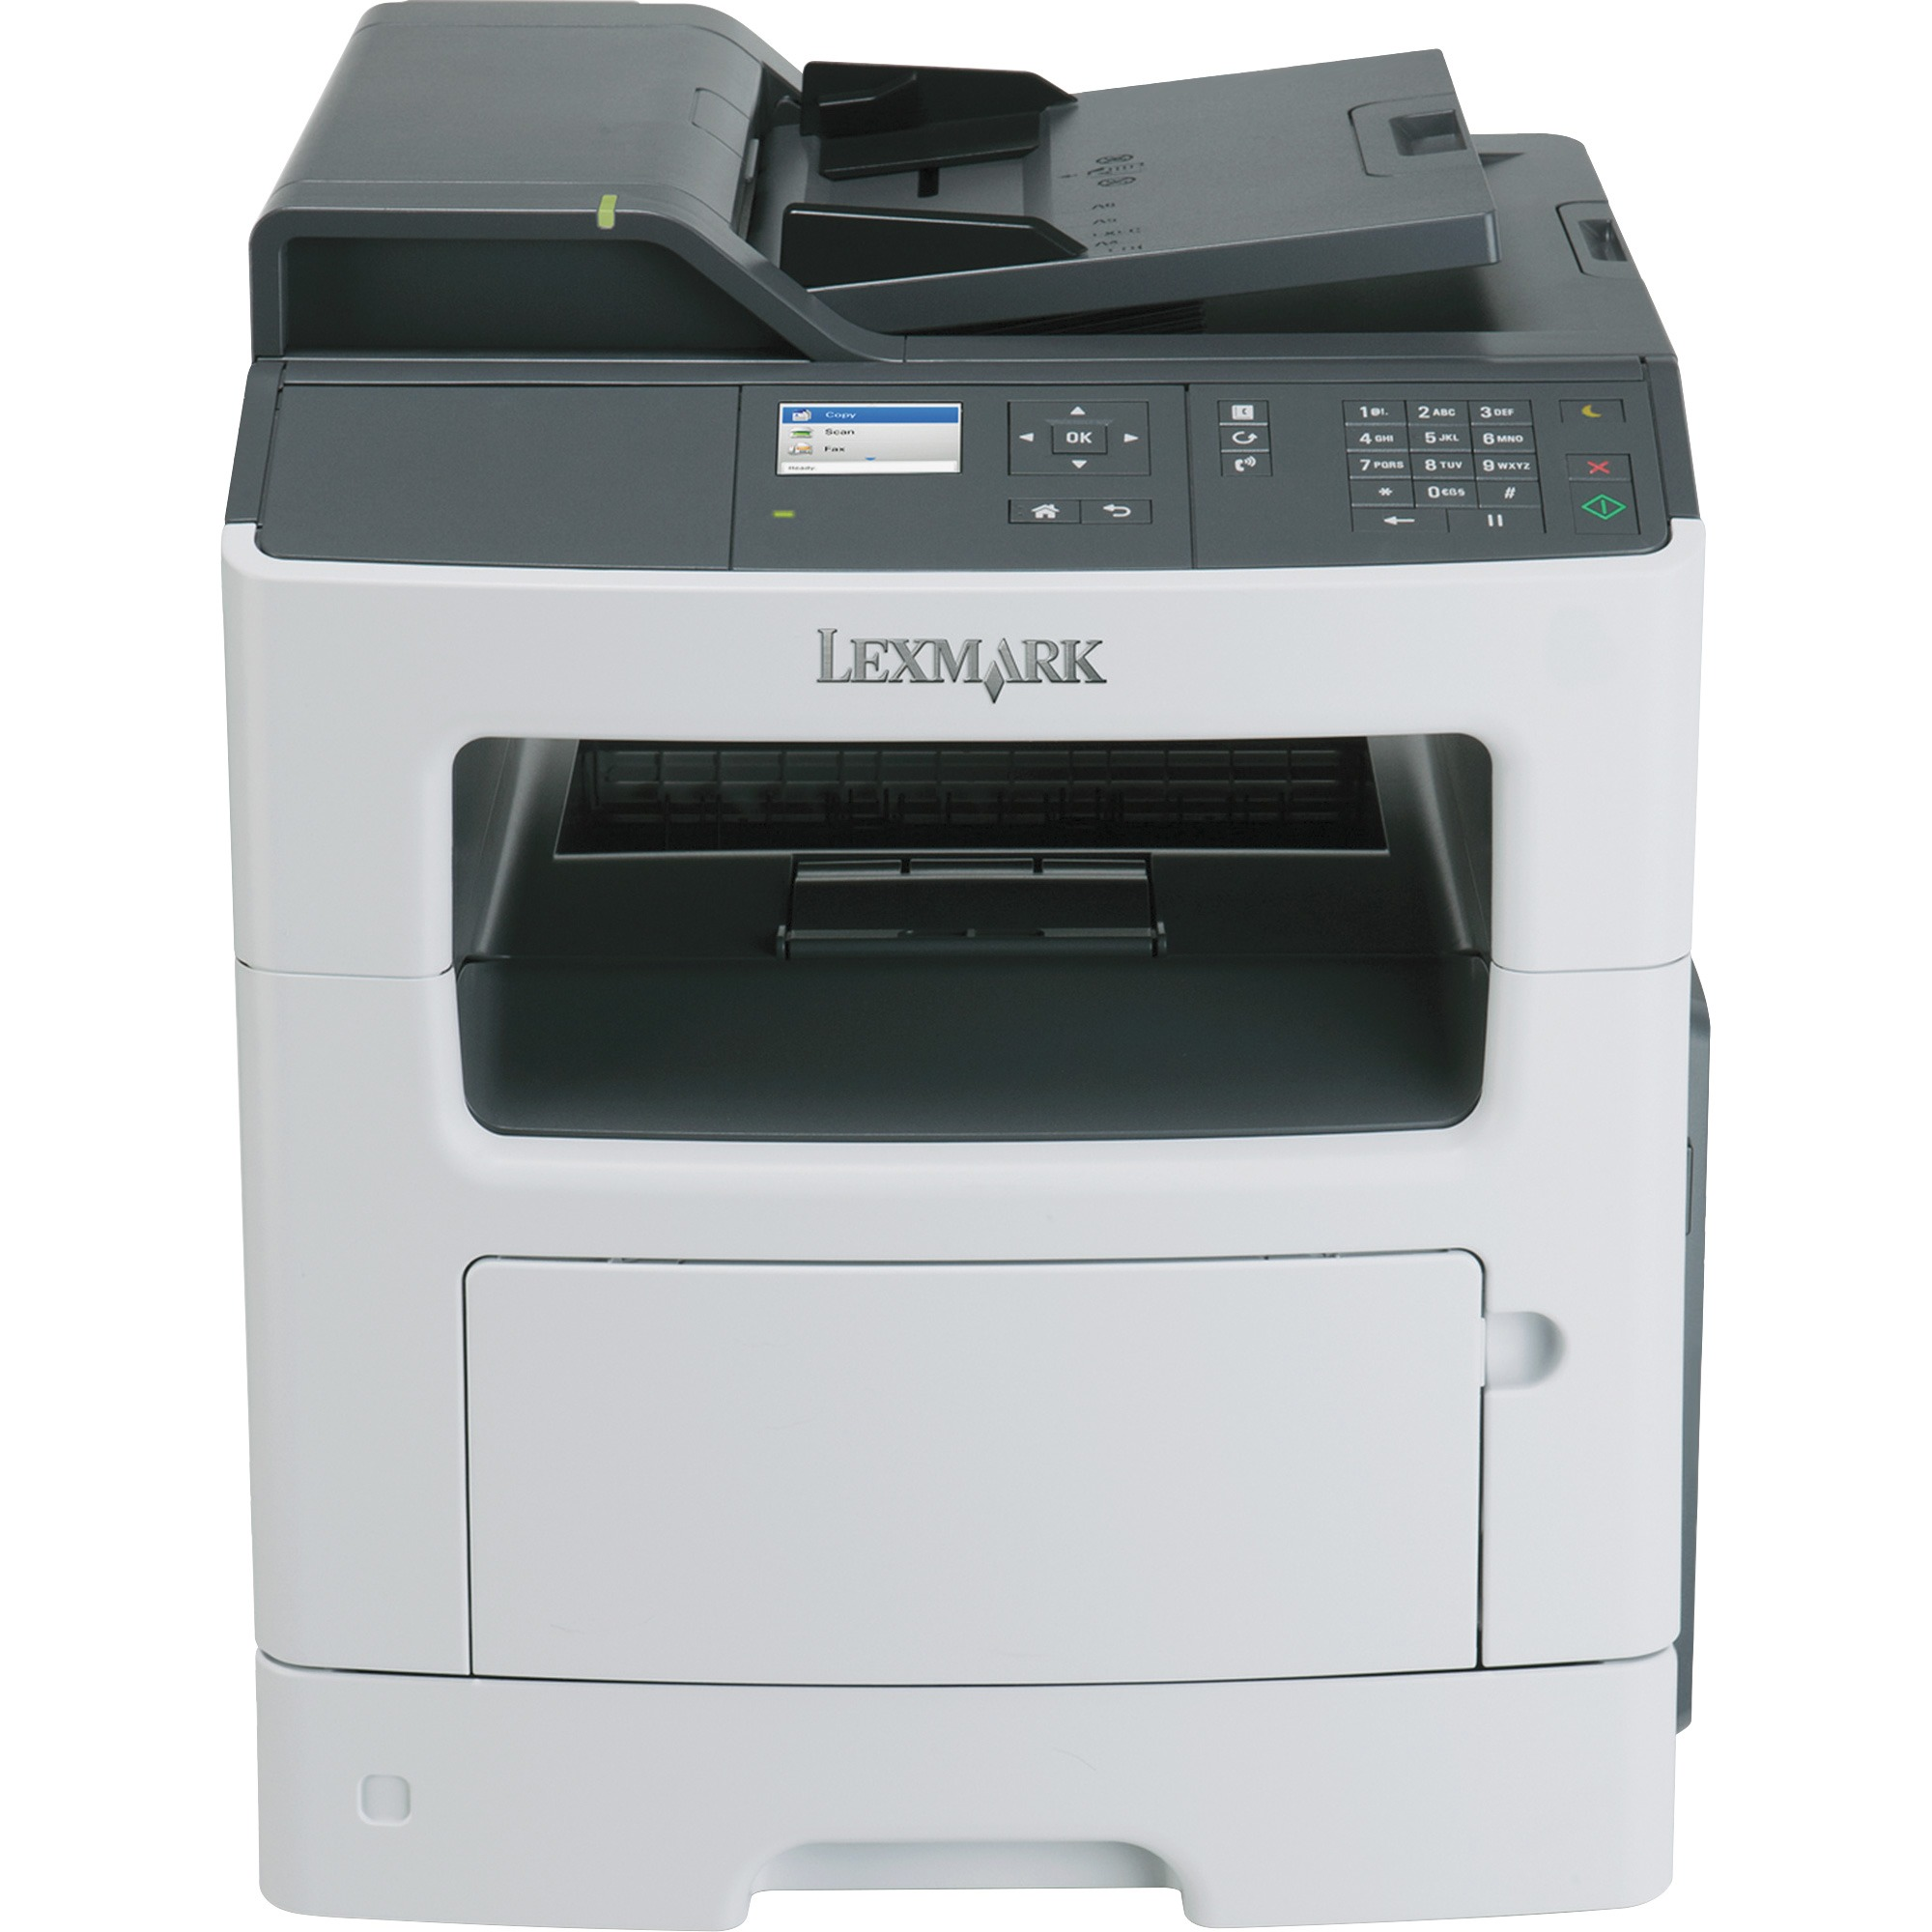 Lexmark MX317dn Laser Multifunction Printer - Monochrome - Plain Paper Print - Desktop